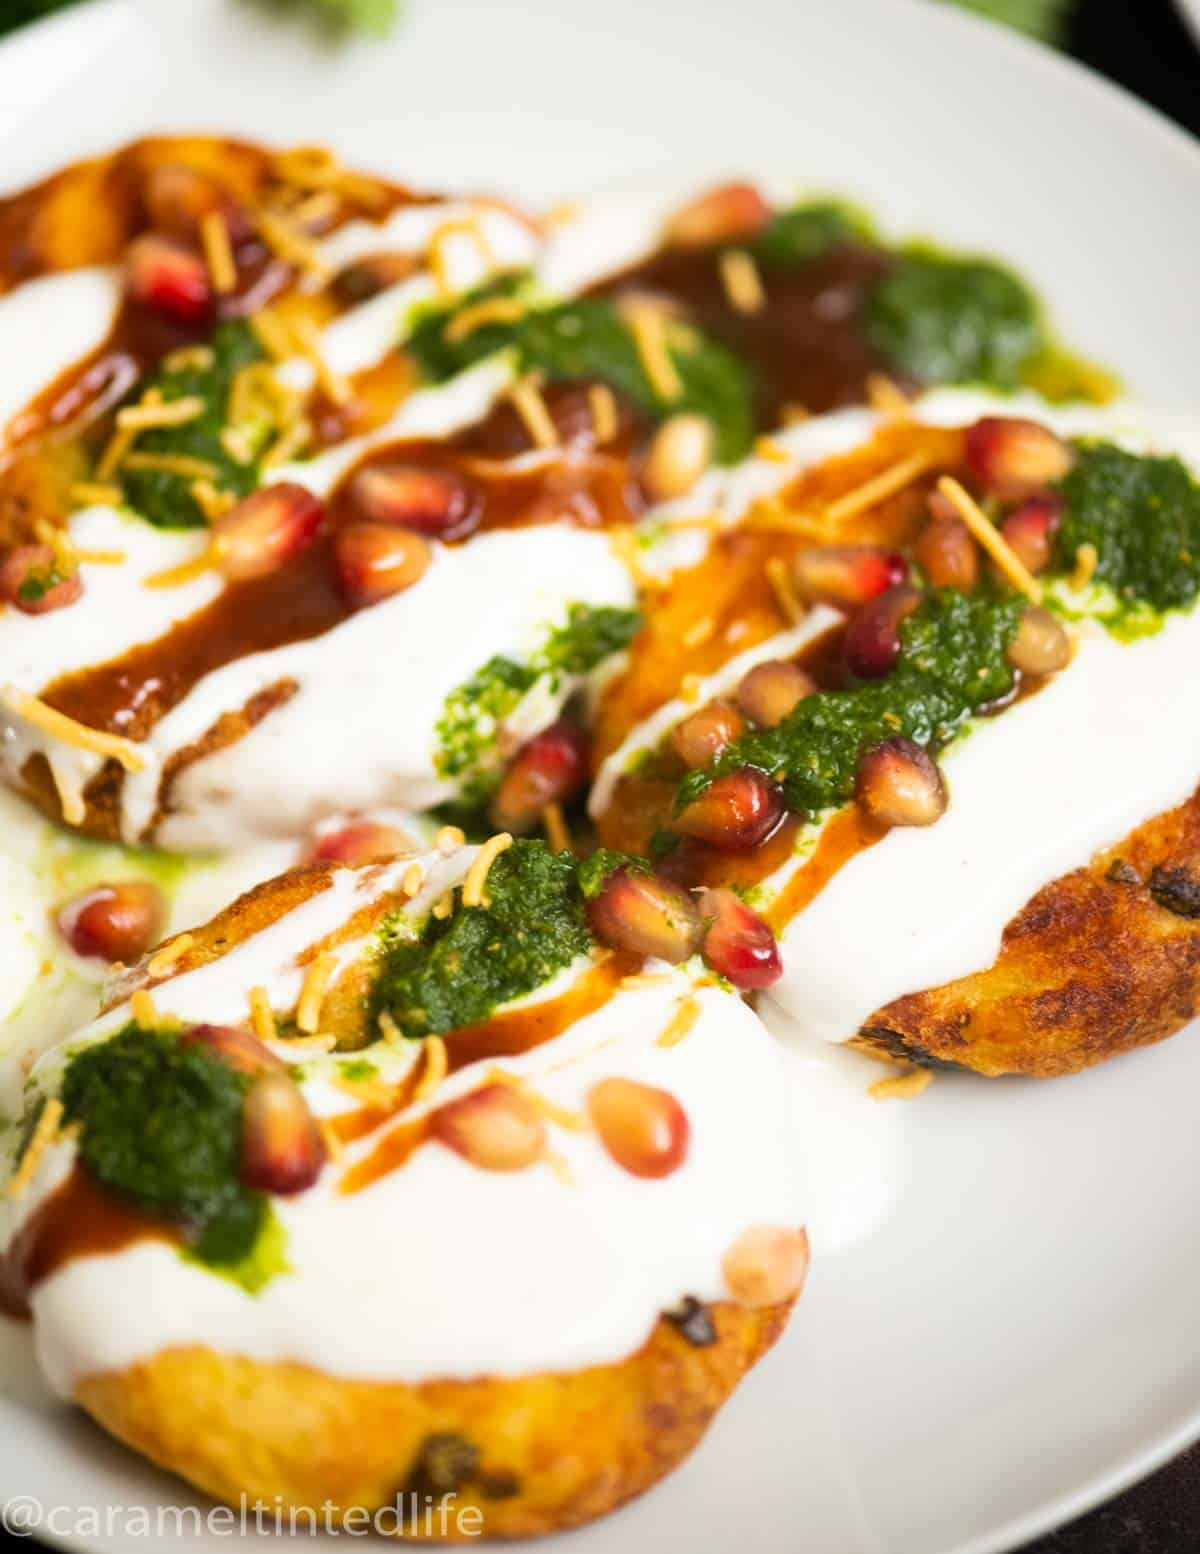 tikkis on a plate with sauces and chutneys